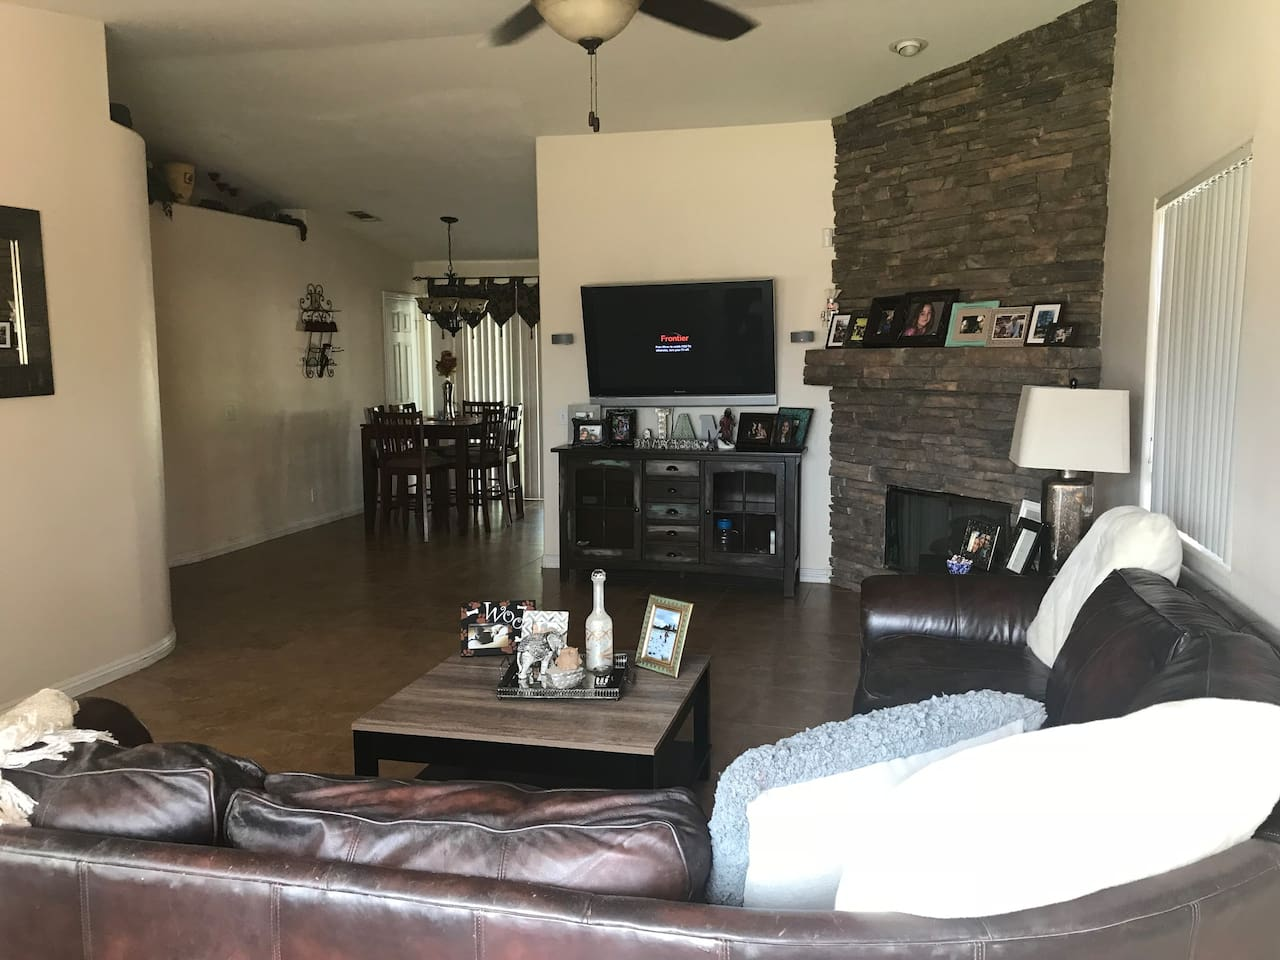 Living room and eating area.  Couch is large enough to sleep two people.  Cable TV, working fireplace.